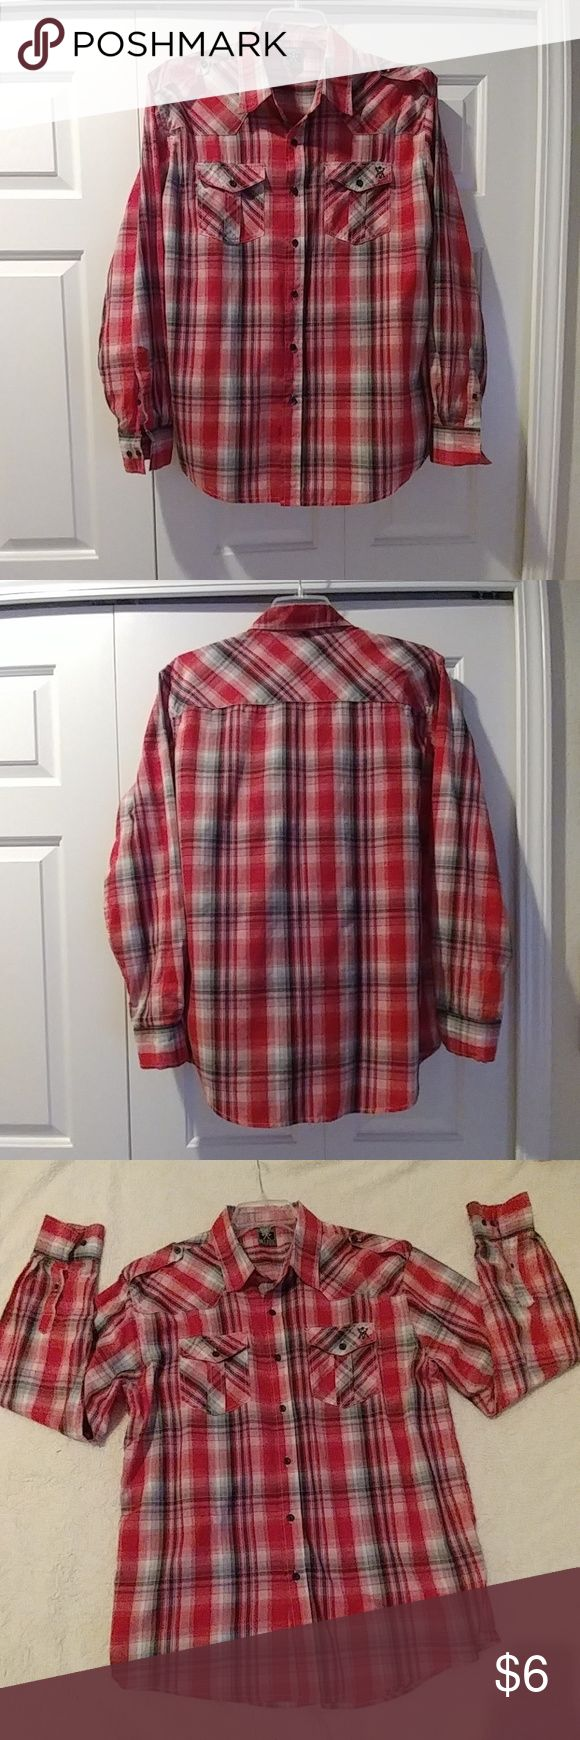 Shirt Have been worn a few times,great condition Avirex Shirts